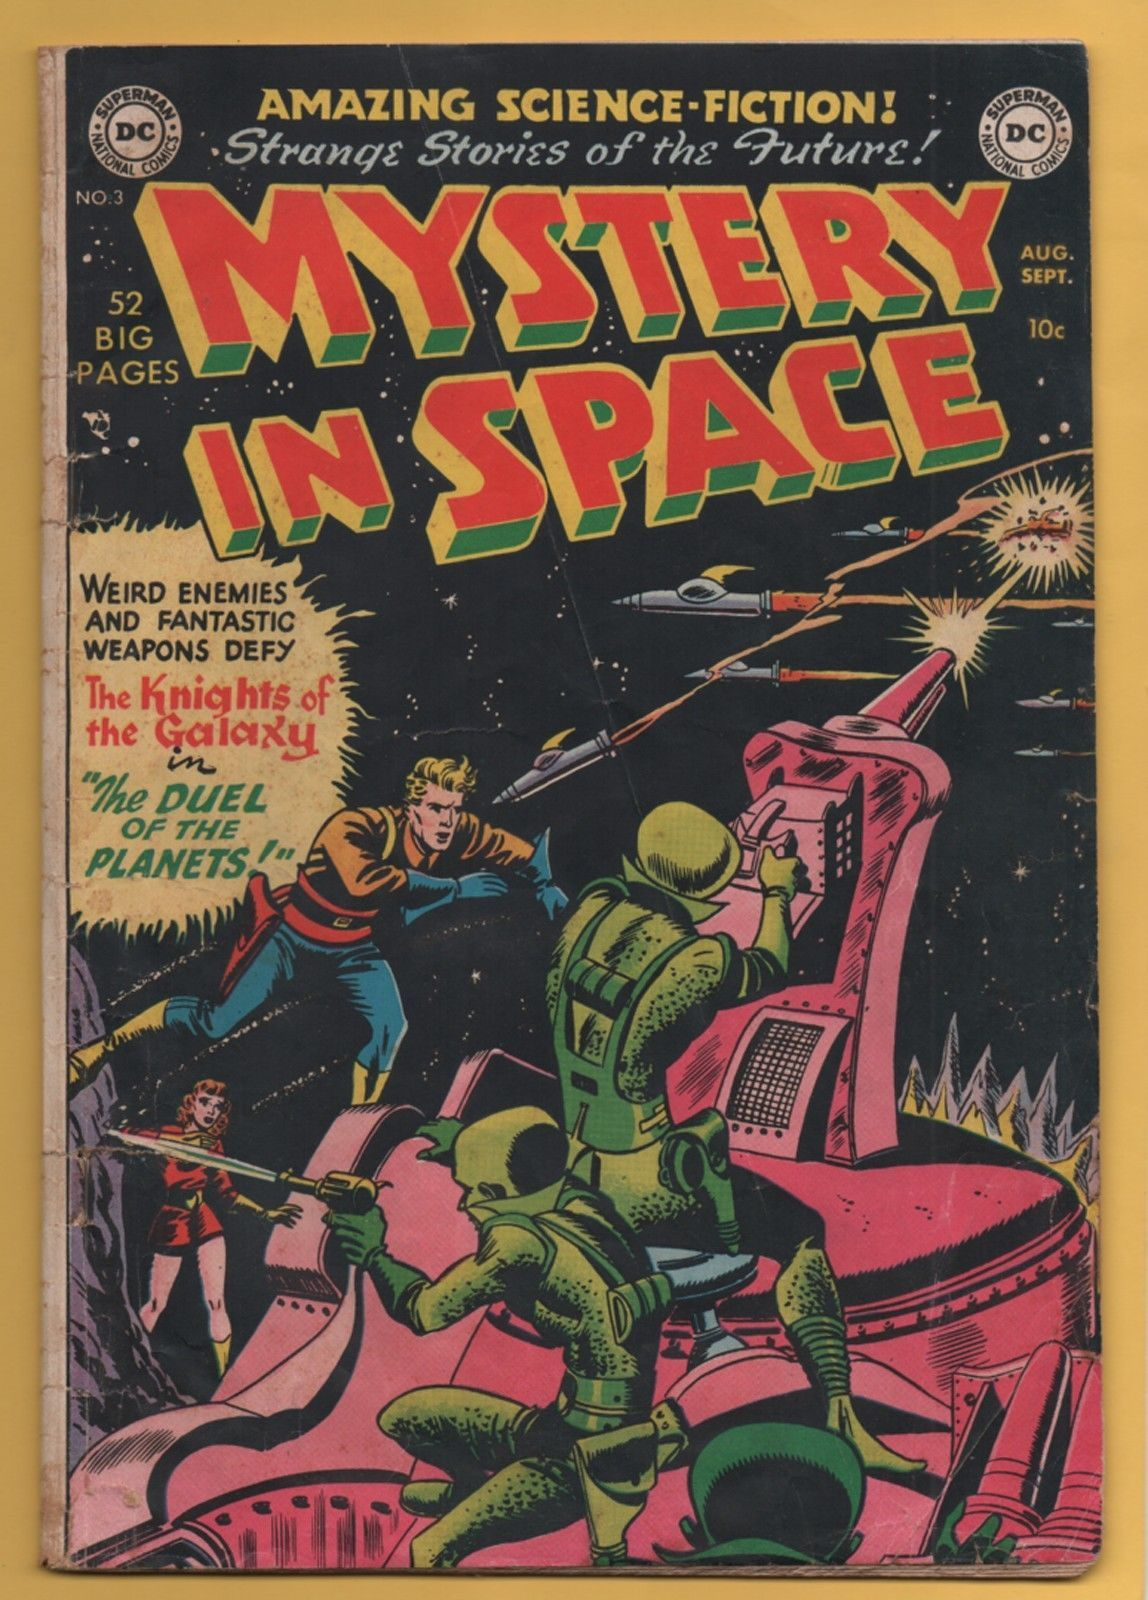 Mystery in Space #3 DC Comics 1951 Infantino The Duel of the Planets! VG- | eBay